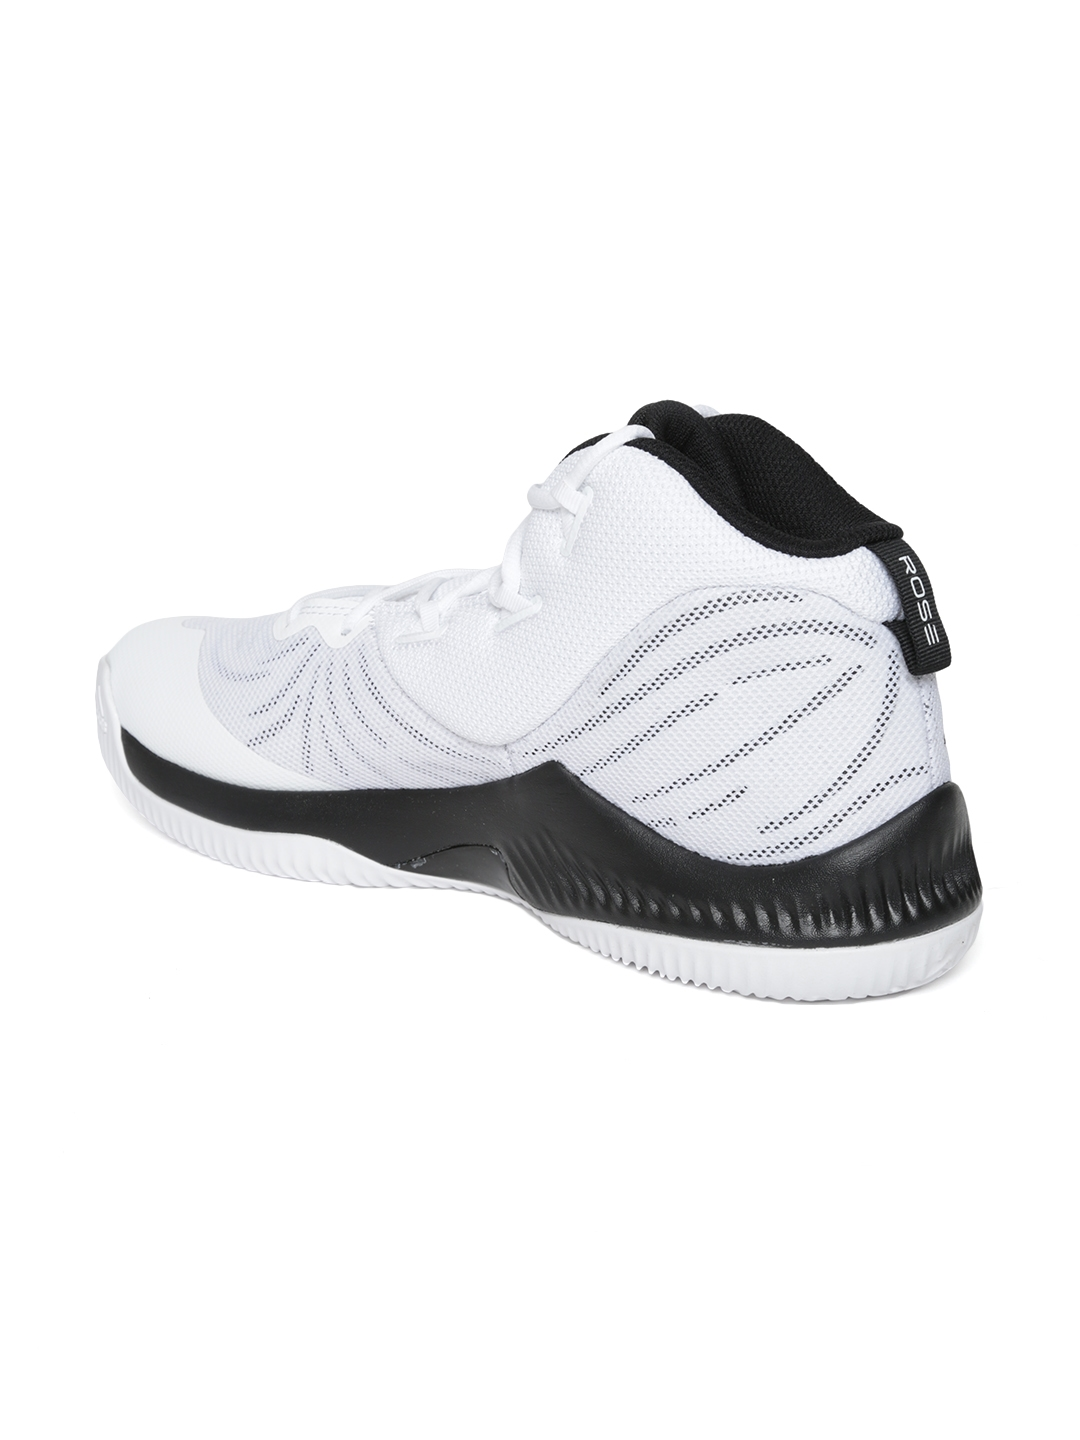 check out 5a2f1 3ee56 ADIDAS Men White D Rose Dominate III Basketball Shoes